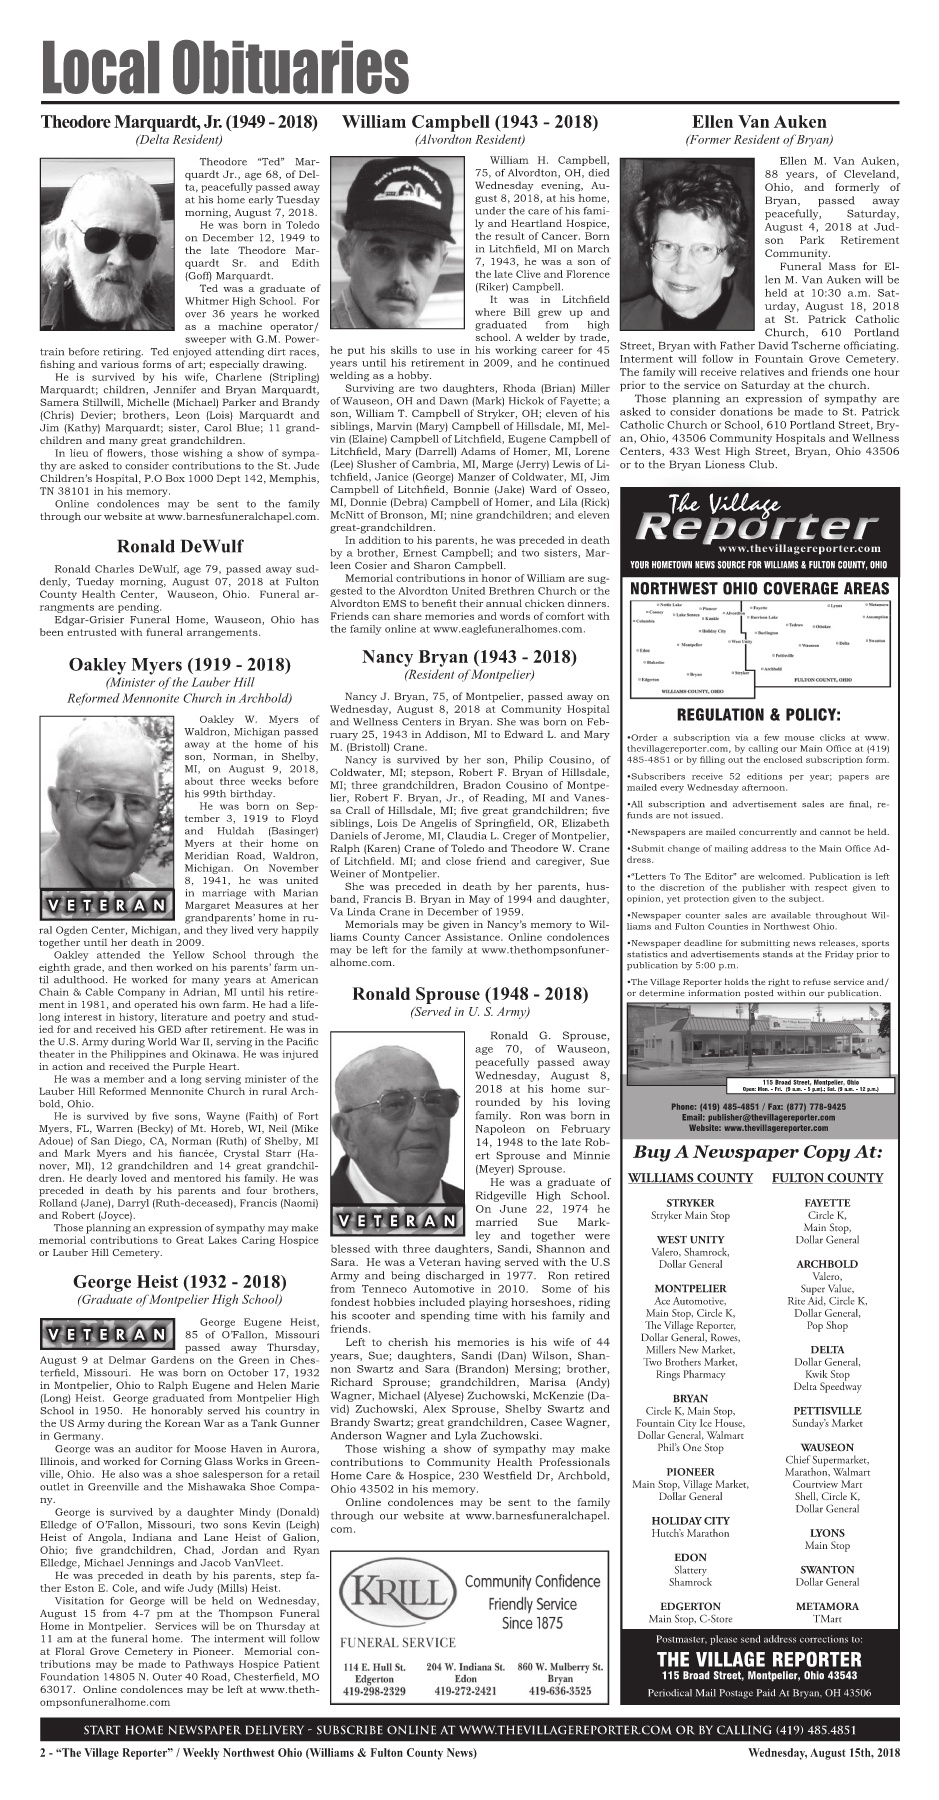 The Village Reporter - August 15th, 2018 (Small) Pages 1 - 42 - Text